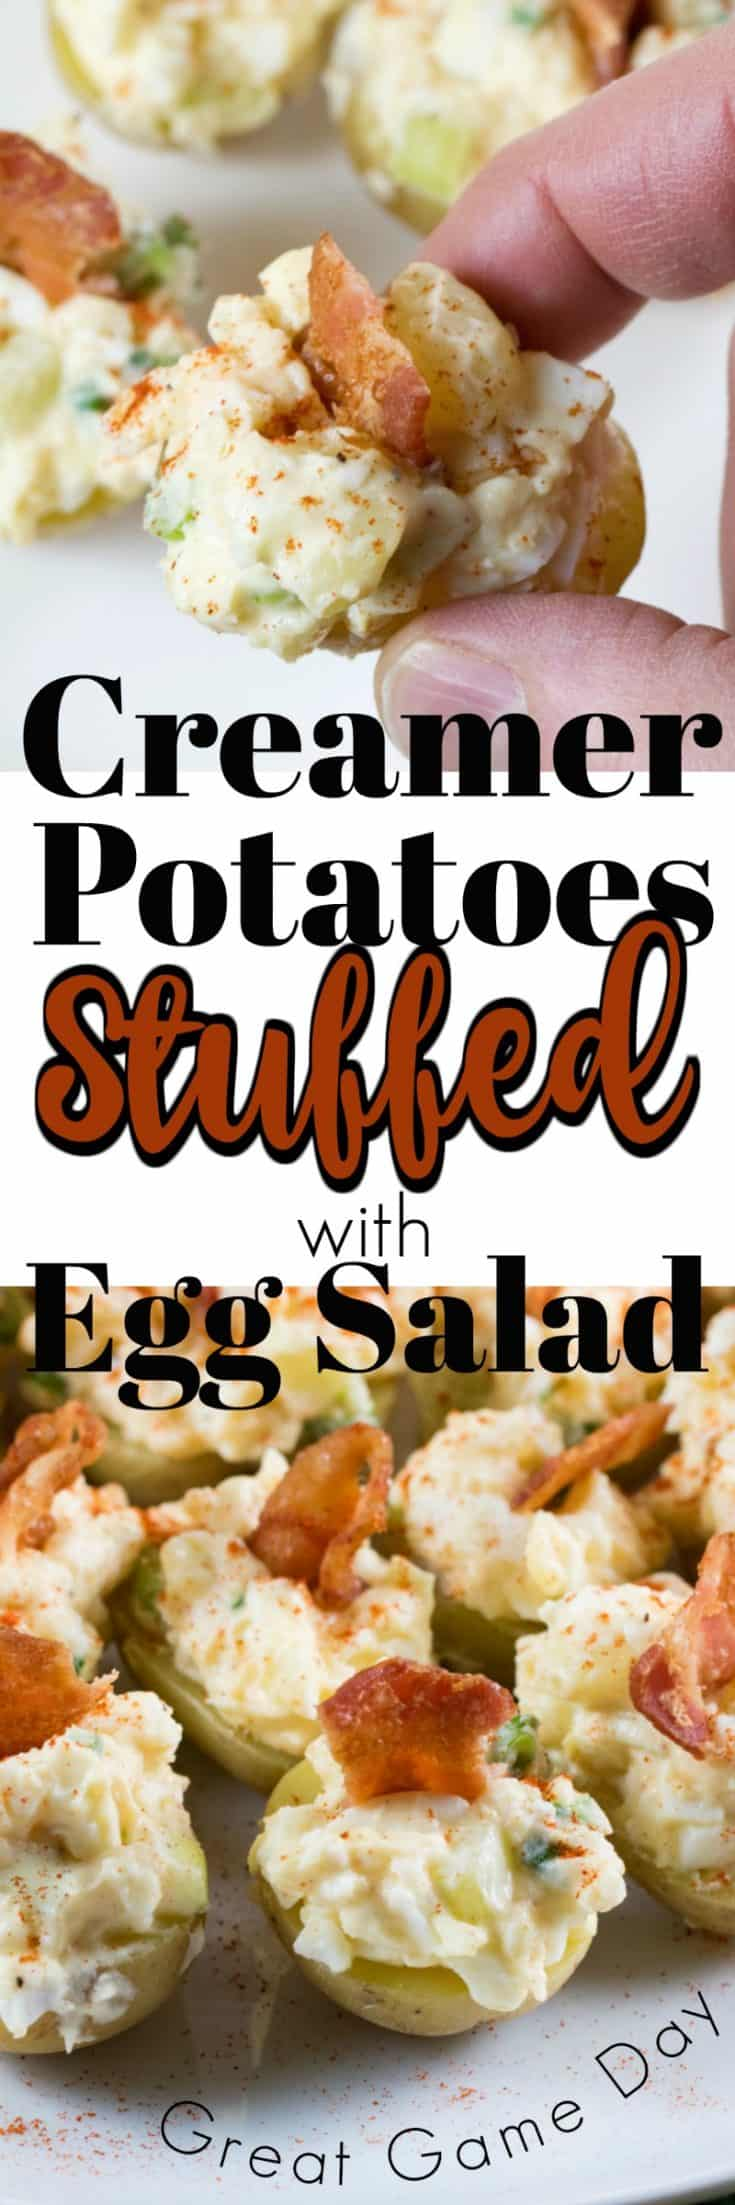 Creamer Potatoes Stuffed with Egg Salad are an amazing treat for Game Day or for anytime. They are easy to make and a classic that everyone will love!! #Creamerpotatoes #Littlepotatoes #eggsalad #appetizer